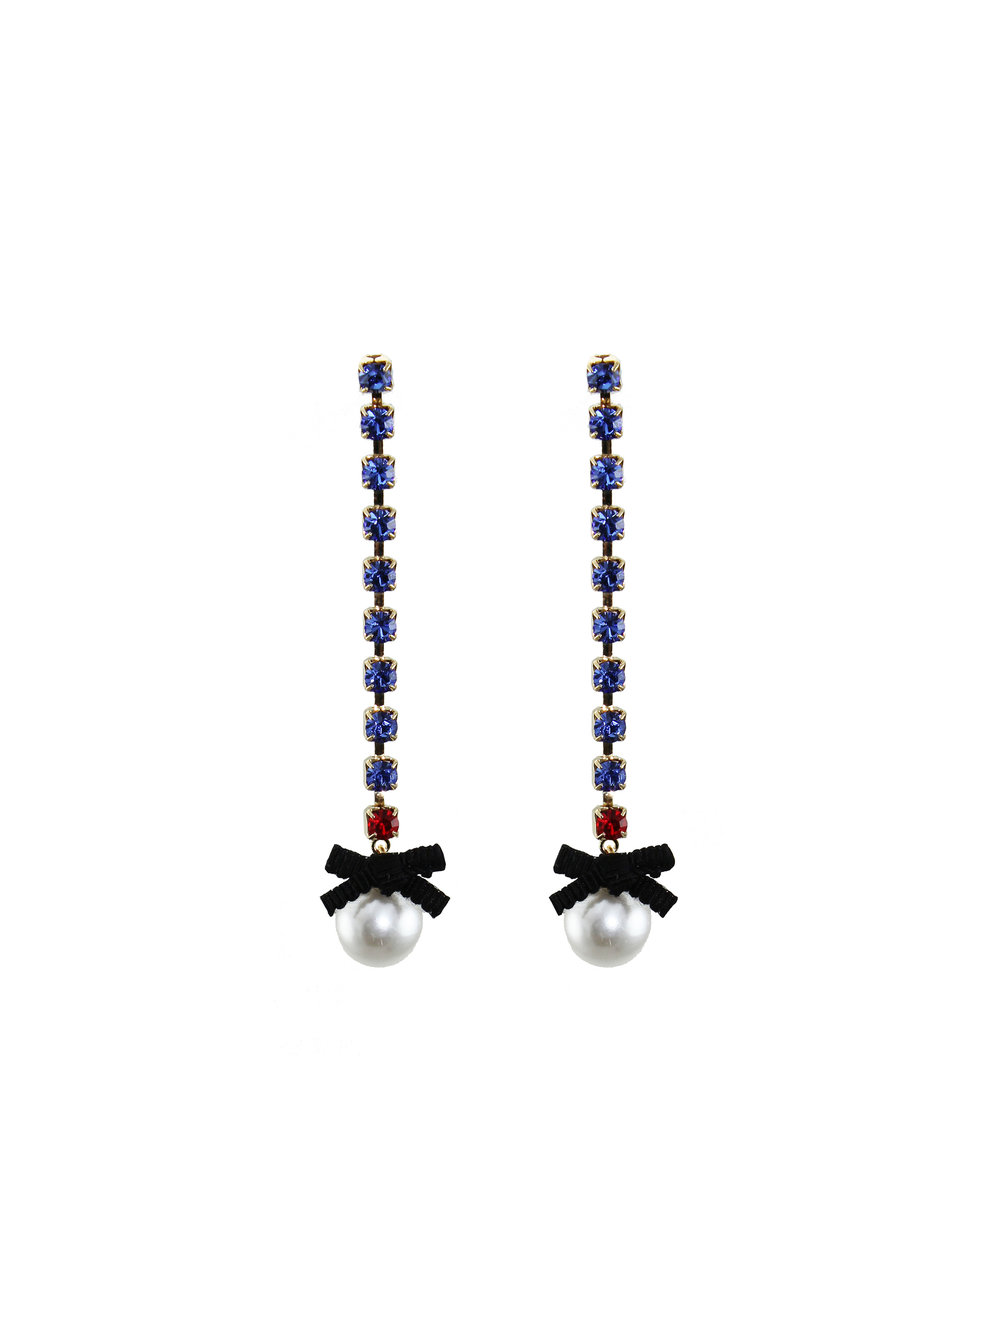 074 - Sapphire & Pearl Bow Earrings.jpg